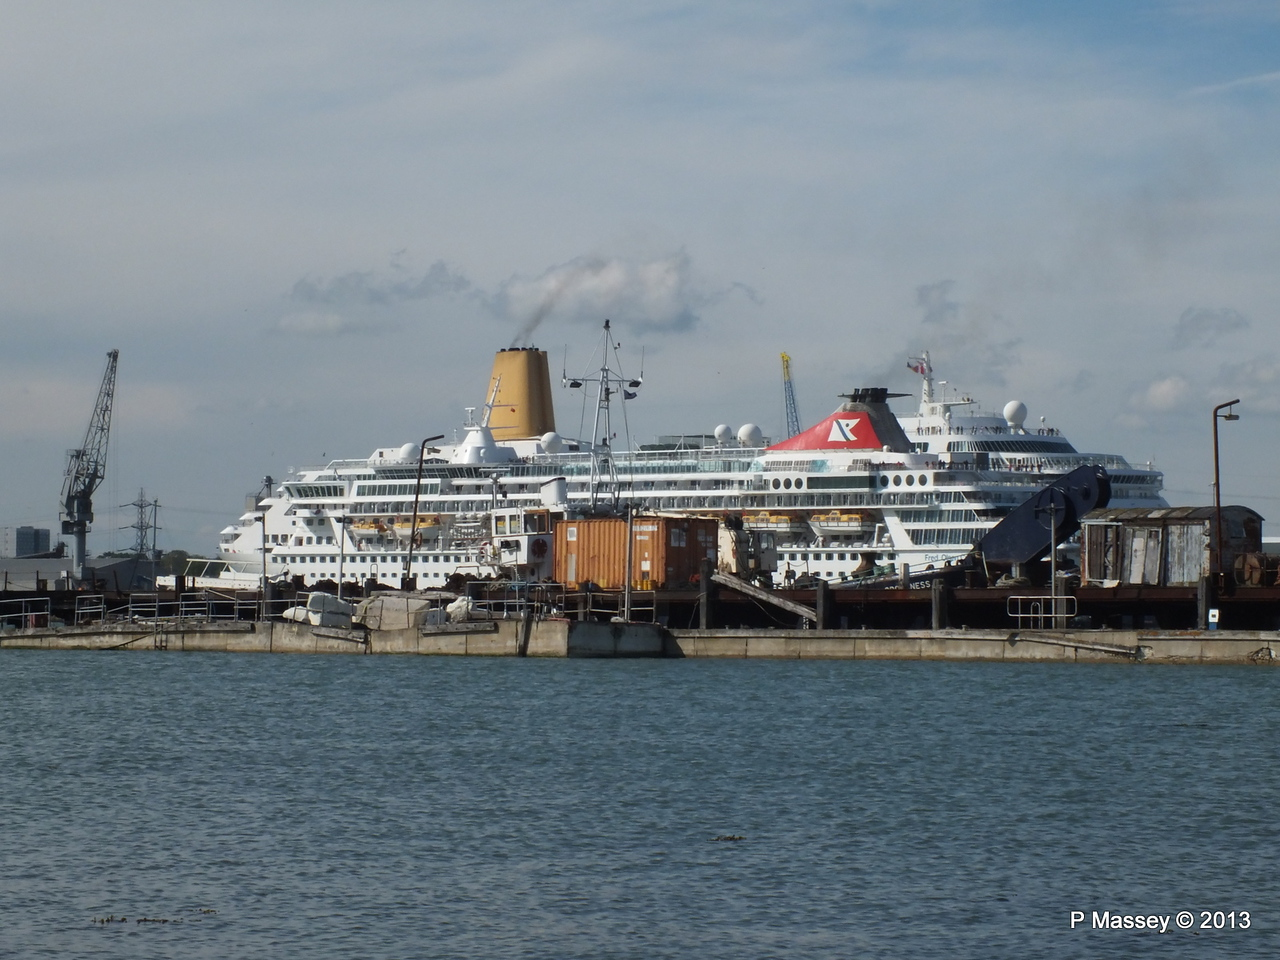 BALMORAL Passing ORIANA over Husbands Jetty PDM 27-05-2013 16-55-13